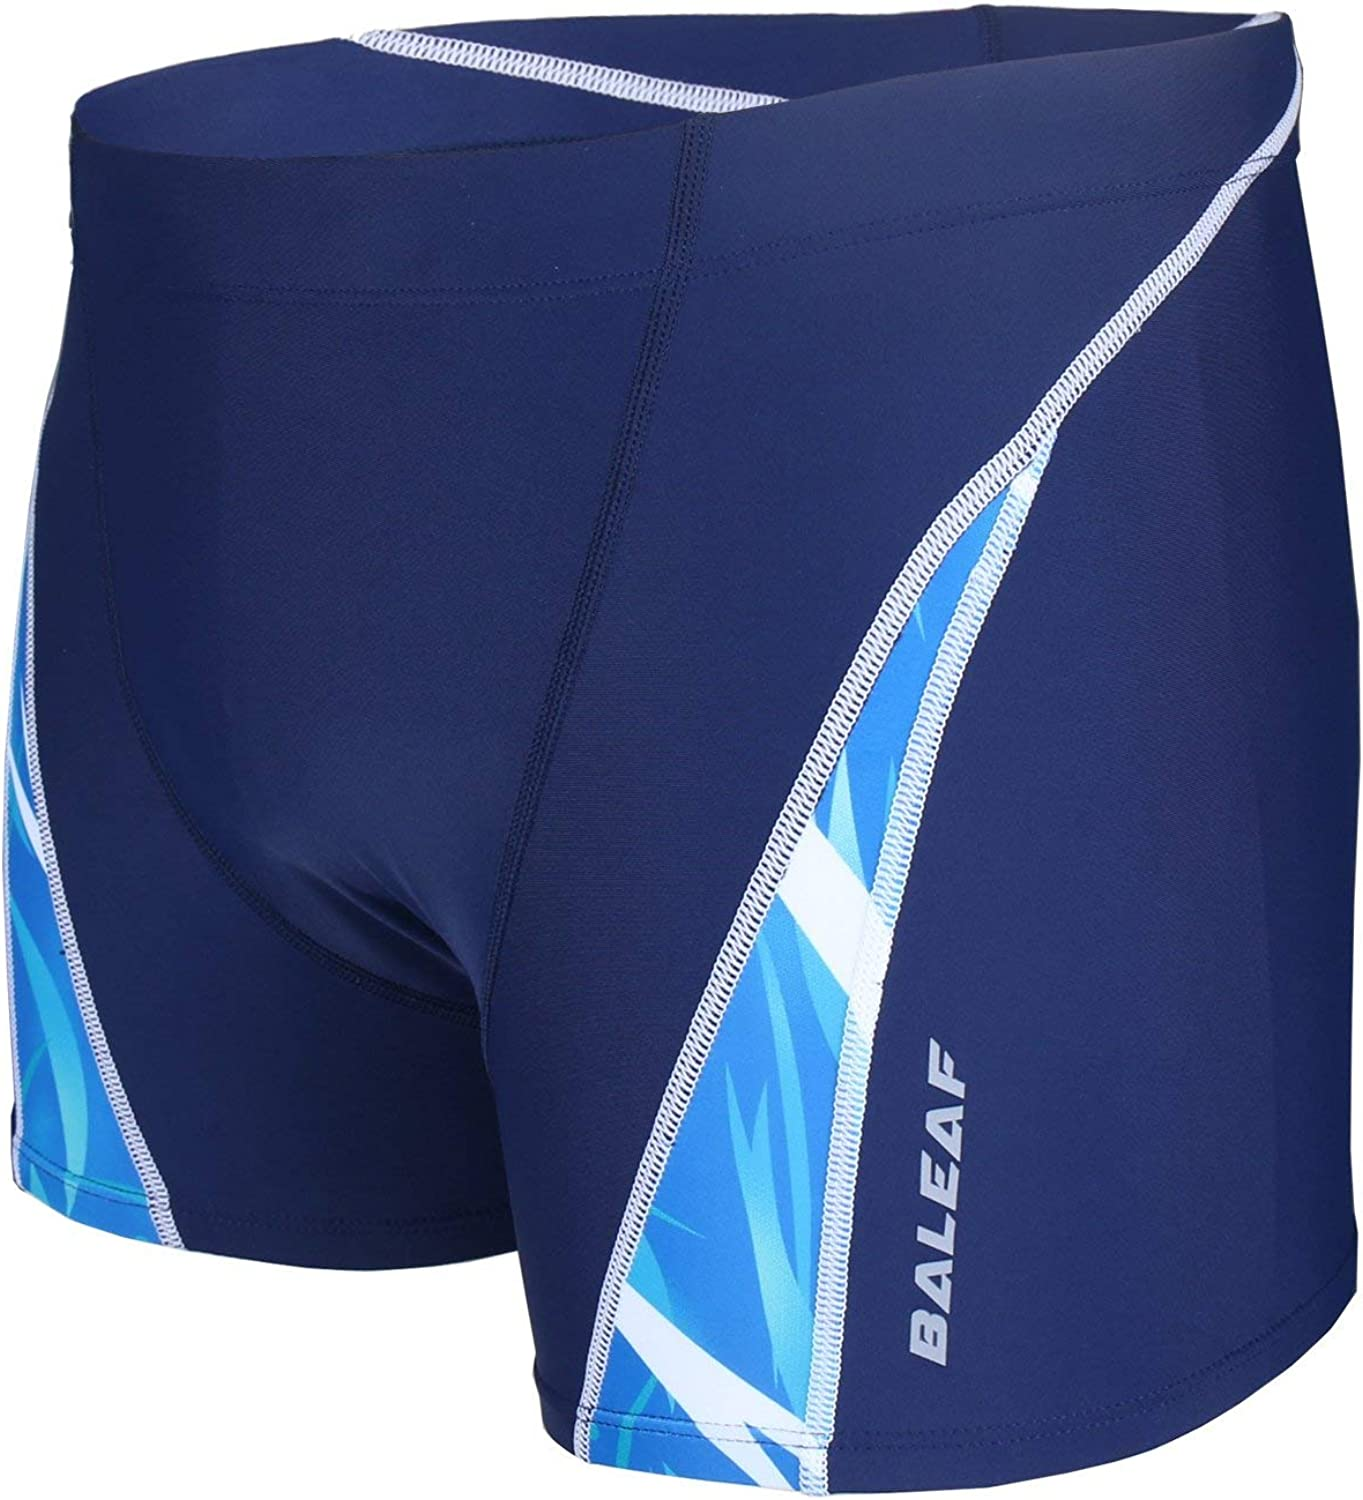 BALEAF Mens Athletic Swim Jammers Quick Dry Compression Square Leg Swim Brief Swimsuit